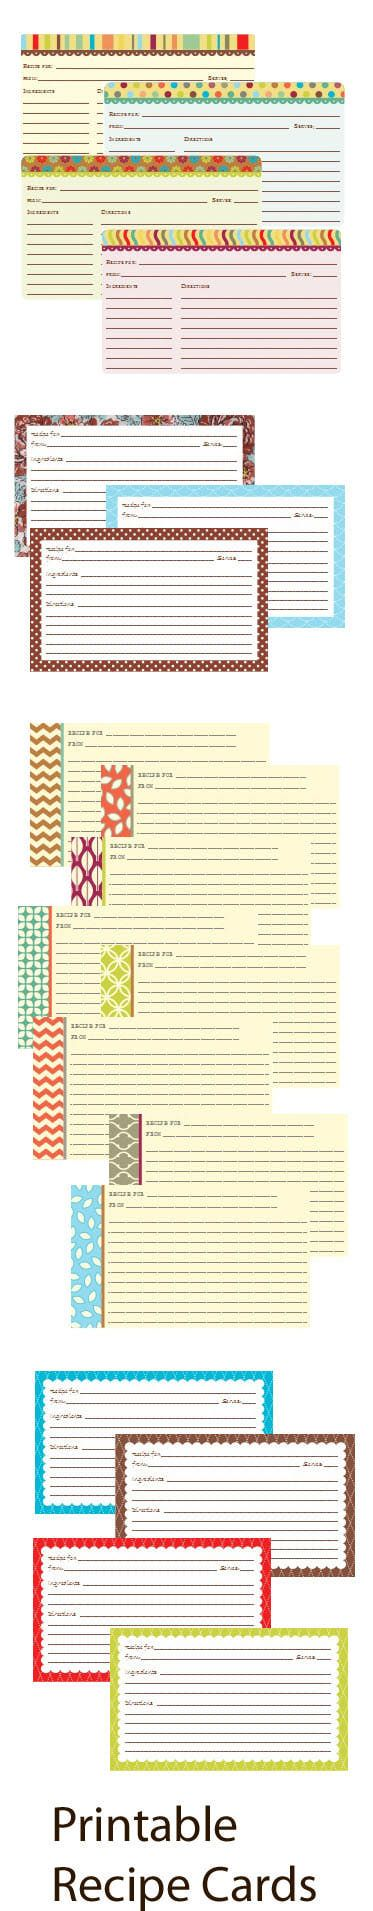 Best 25+ Recipe cards ideas on Pinterest Printable recipe cards - recipe card